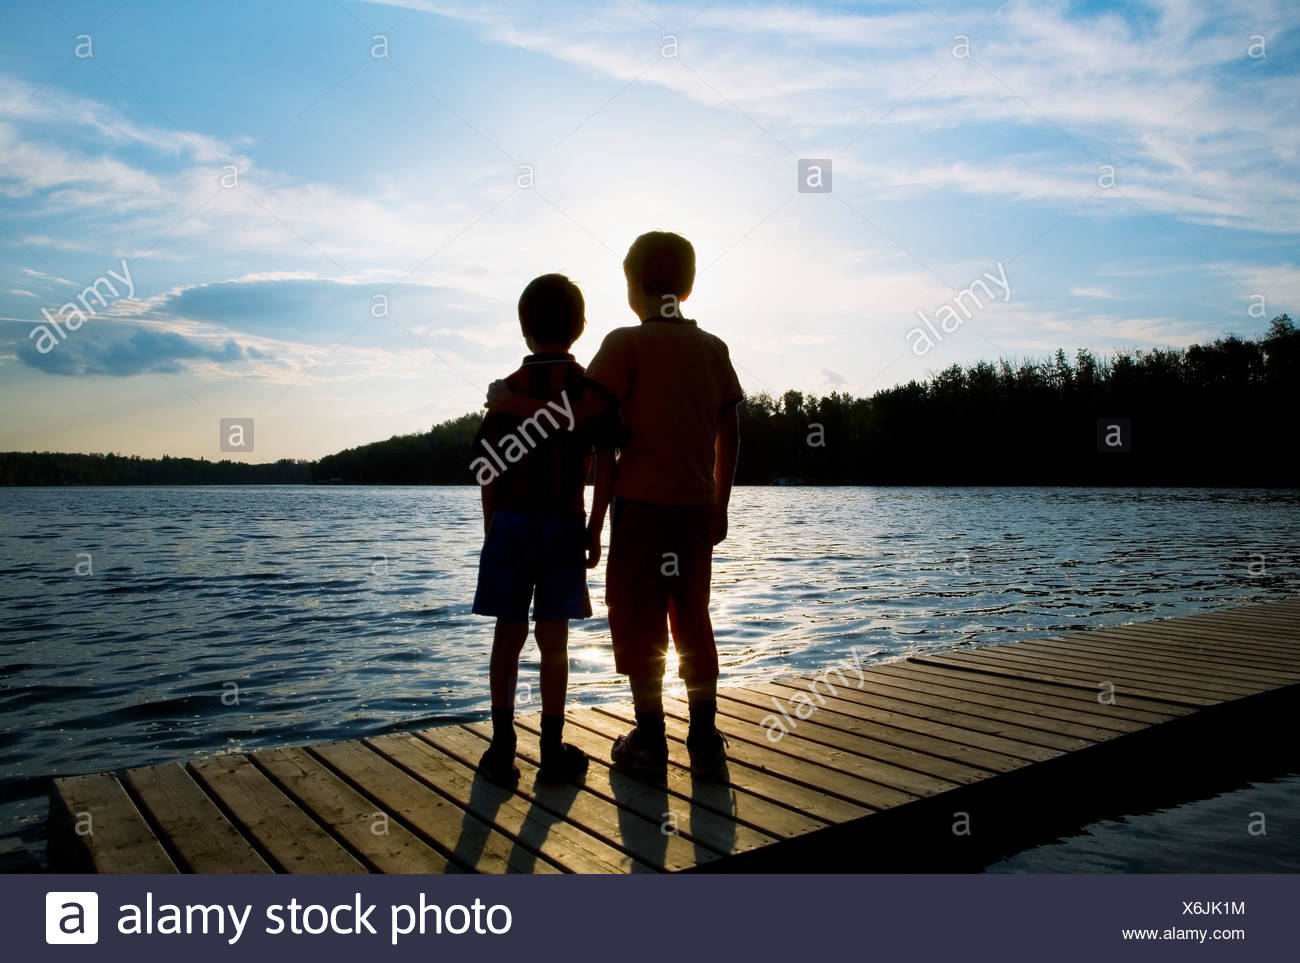 Silhouette of children on a dock Stock Photo